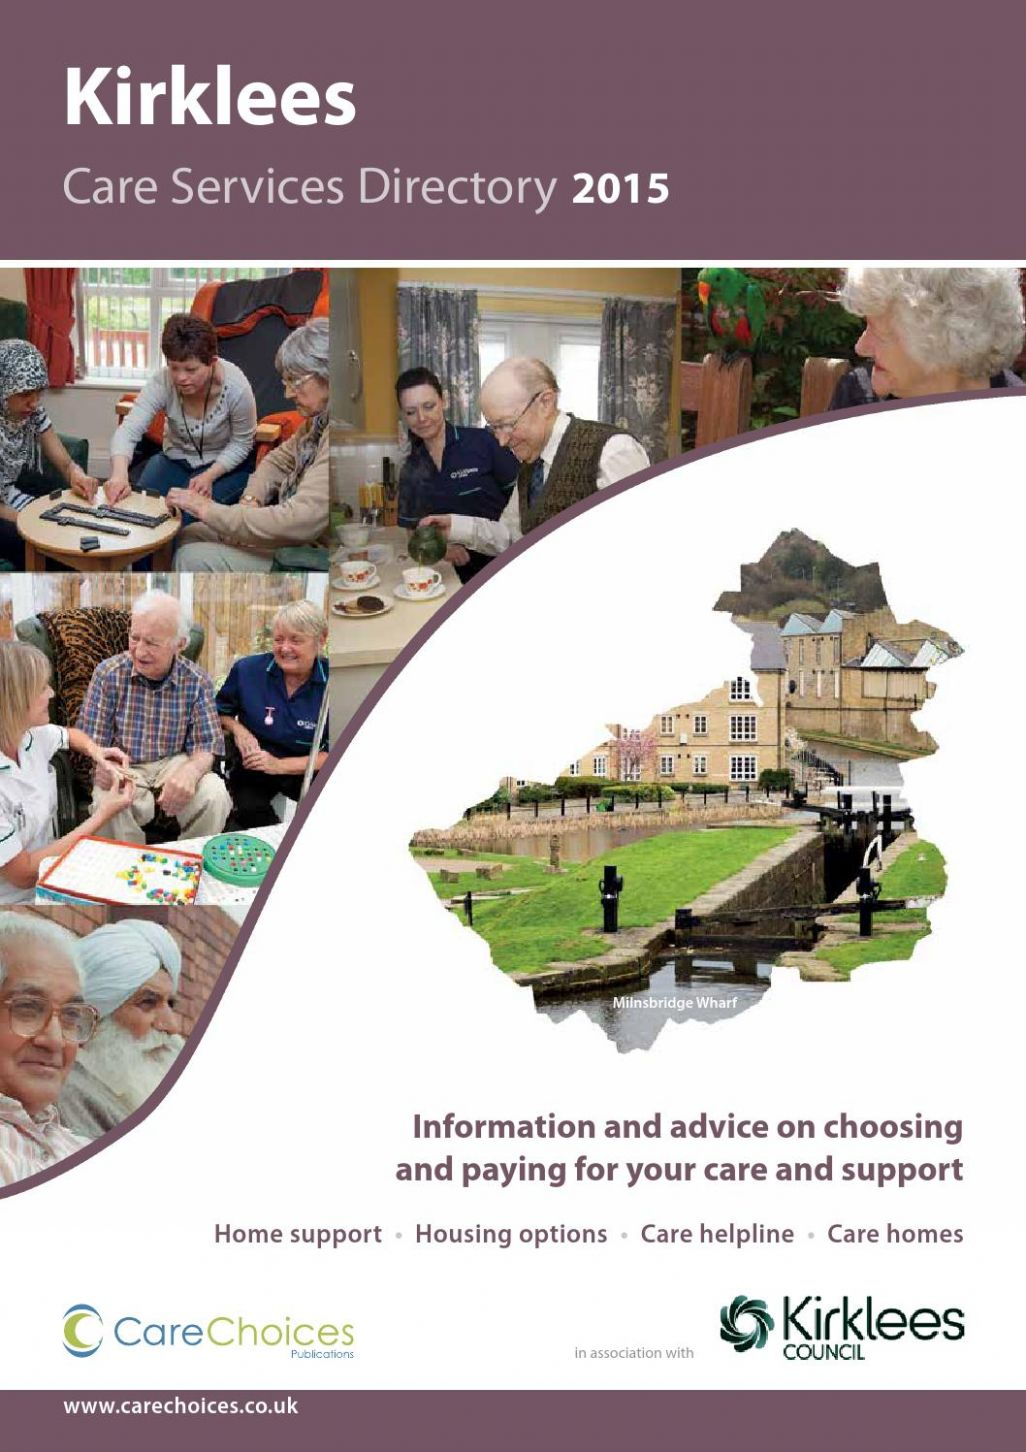 Kirklees Care Services Directory 12 by Care Choices Ltd - issuu - inspiration house care providers